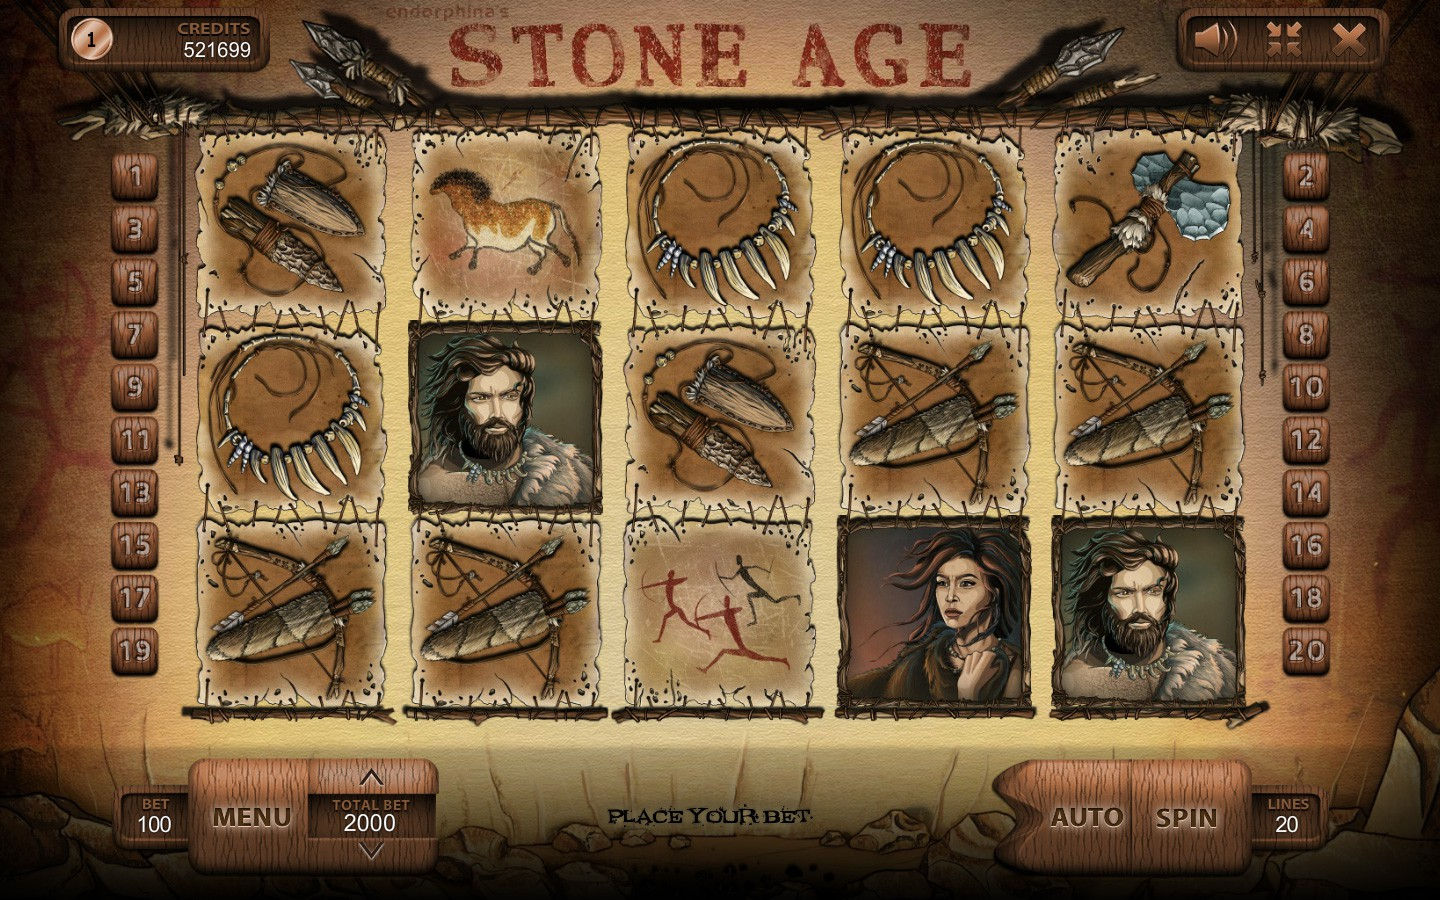 PREMIUM HISTORICAL SLOTS | Try STONE AGE GAME now!